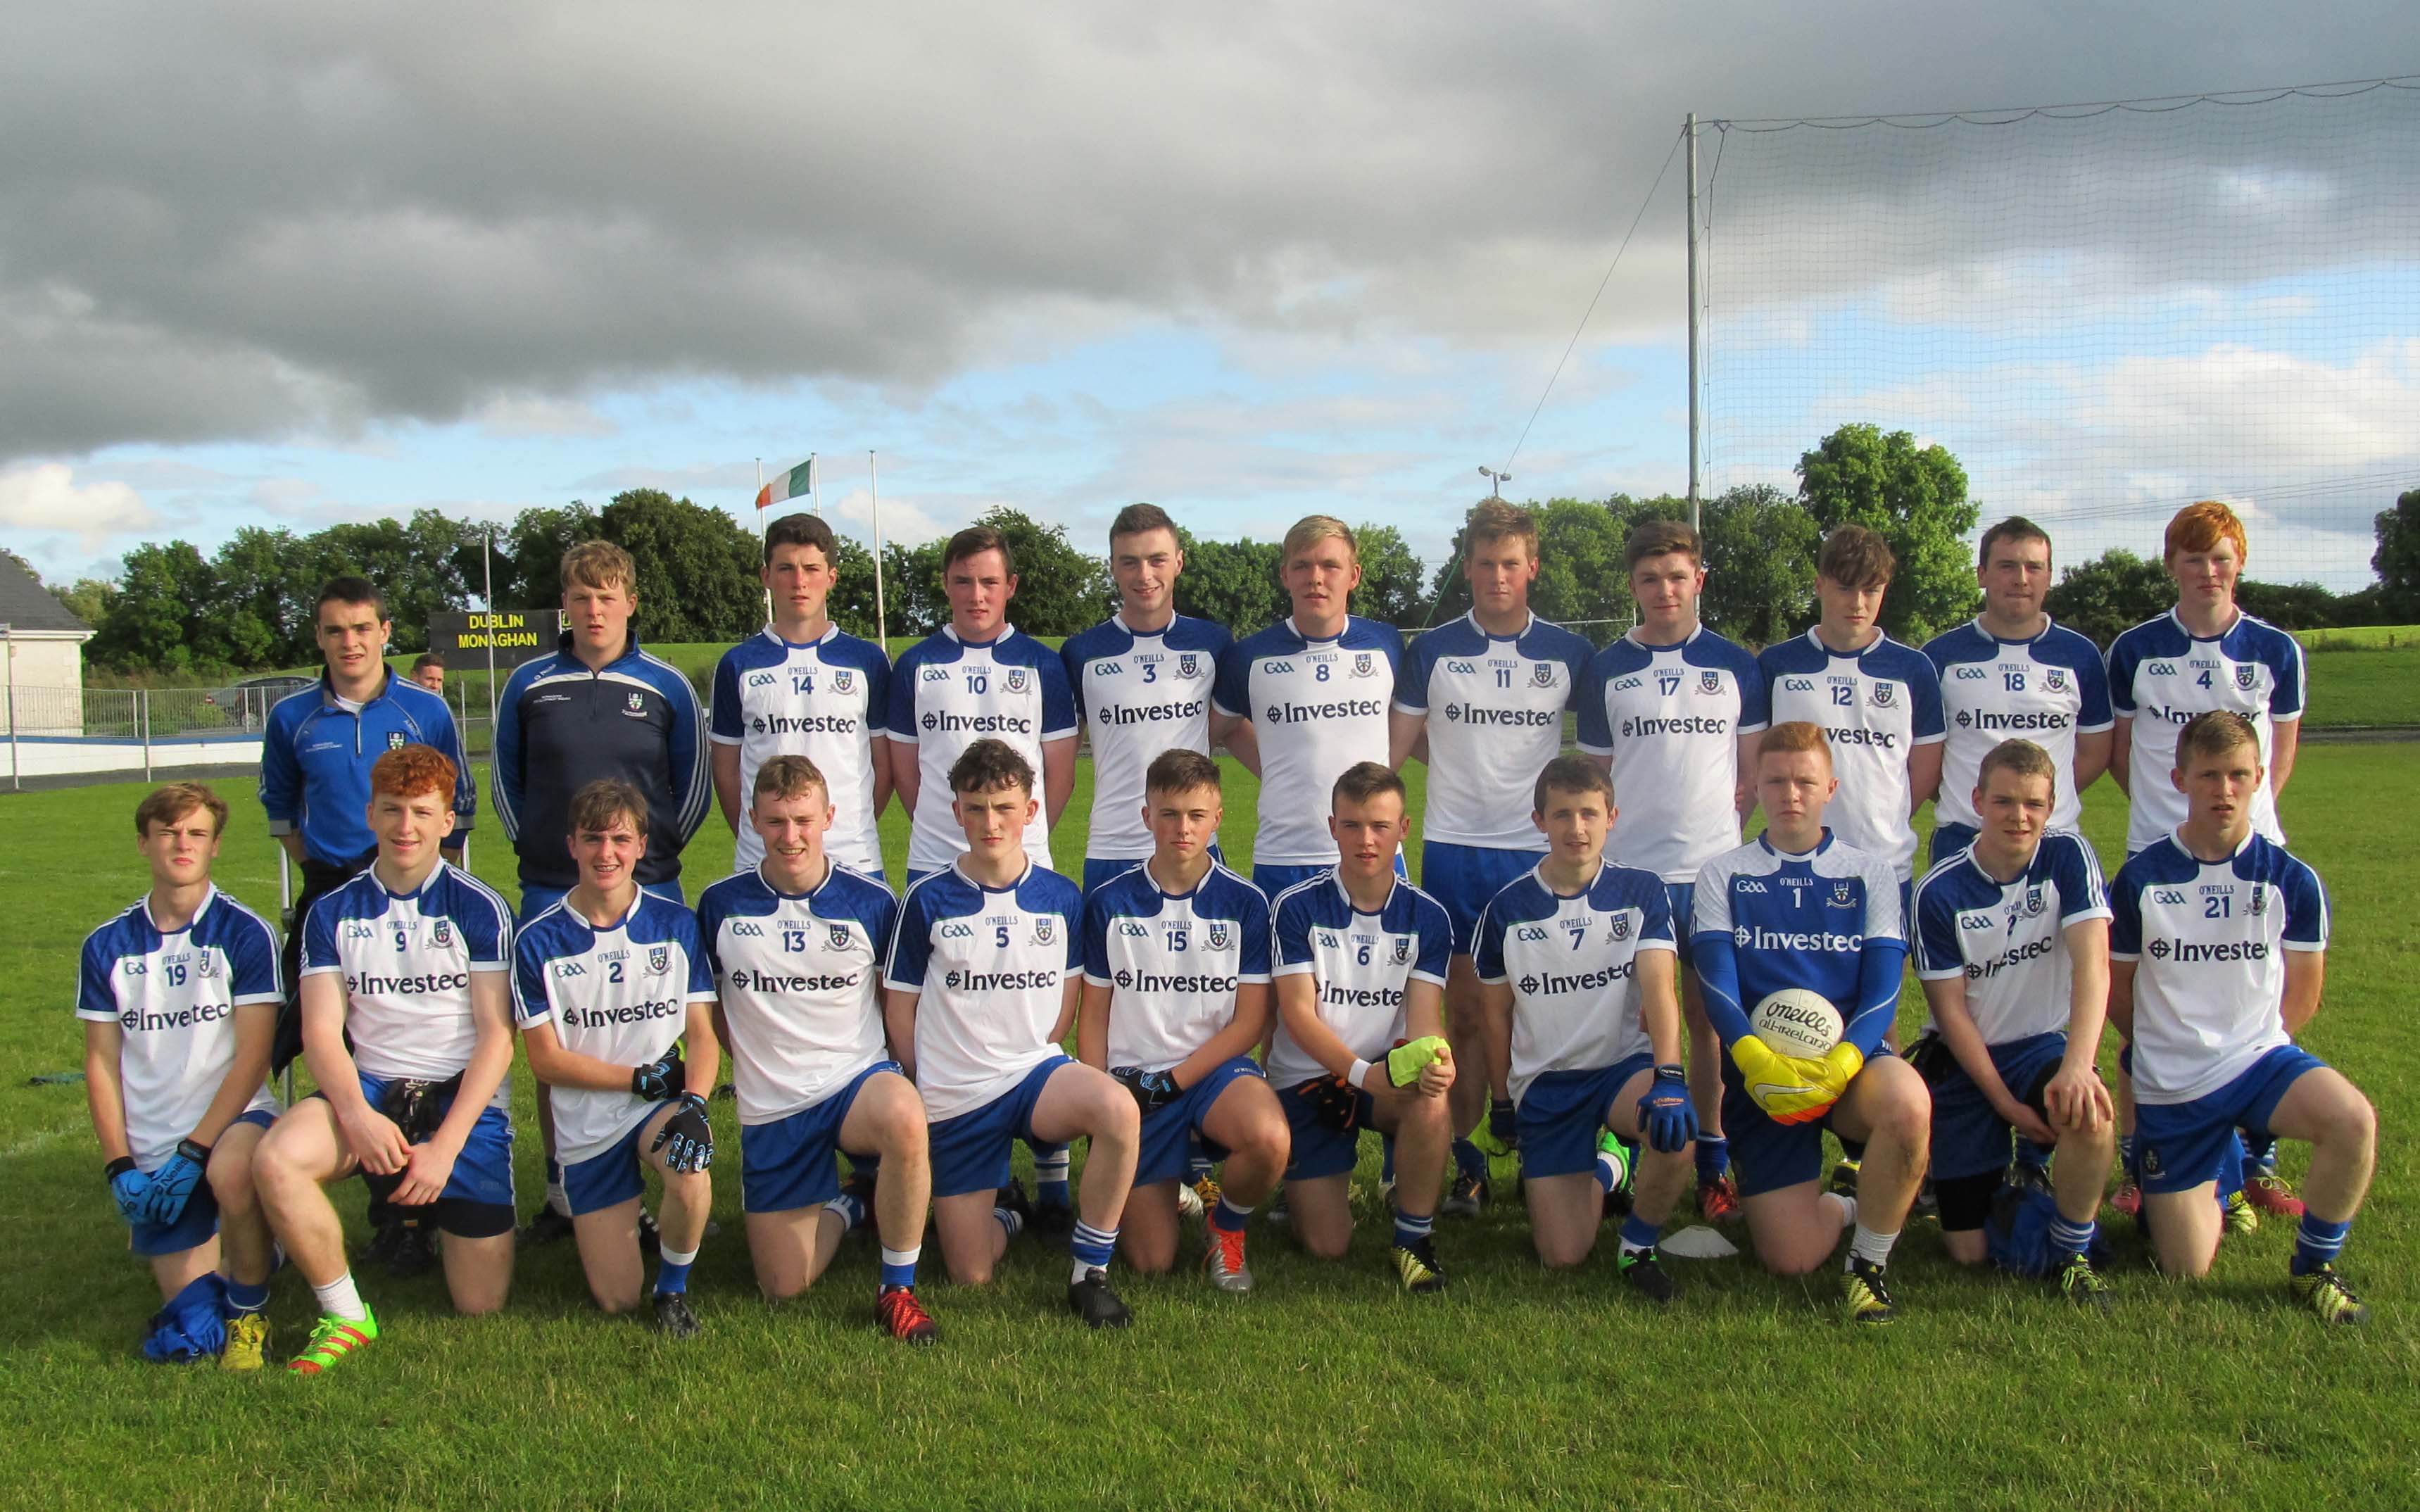 Monaghan U16 Development Squad – Update on Gerry Reilly tournament